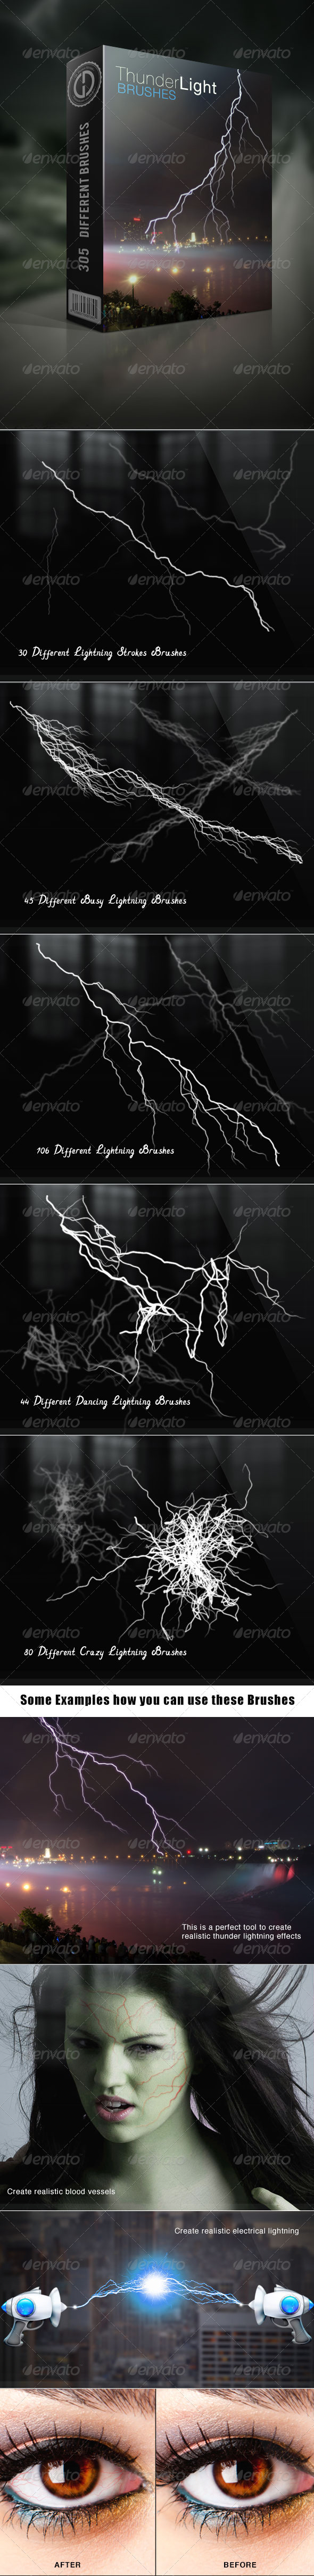 Thunder Lightning Brushes - Brushes Photoshop